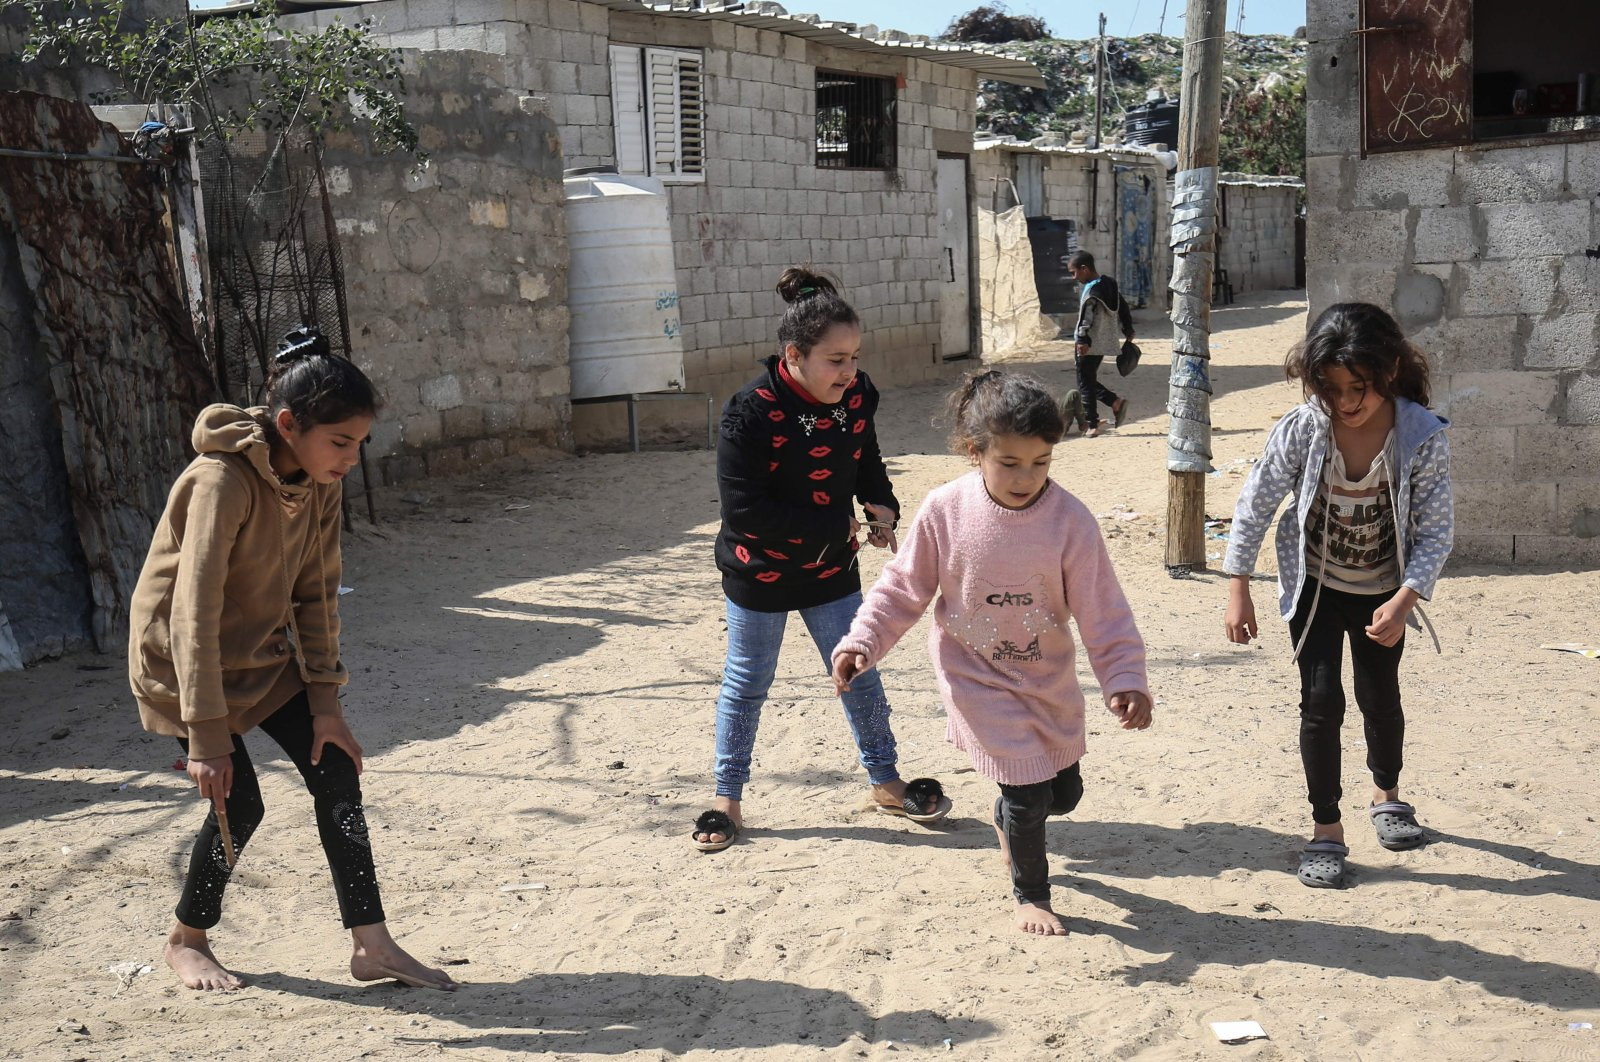 Palestinian girls play in a street in the Khan Younis camp for Palestinian refugees in the southern Gaza Strip, Palestine, Feb. 24, 2021. (AFP Photo)